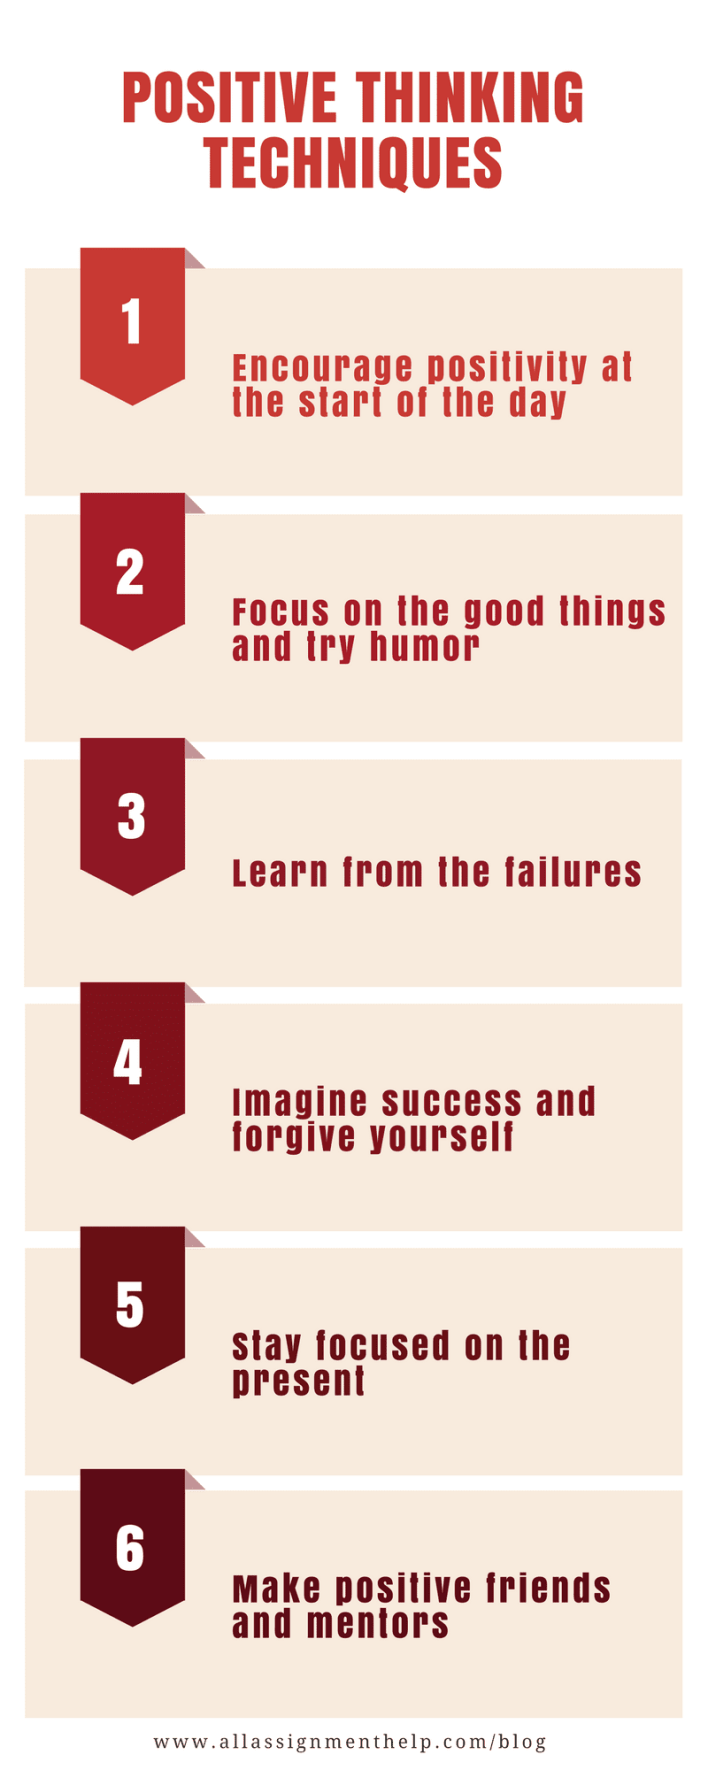 Power Of Negative Thinking >> Positive thinking is the key to success | AllAssignmentHelp.com